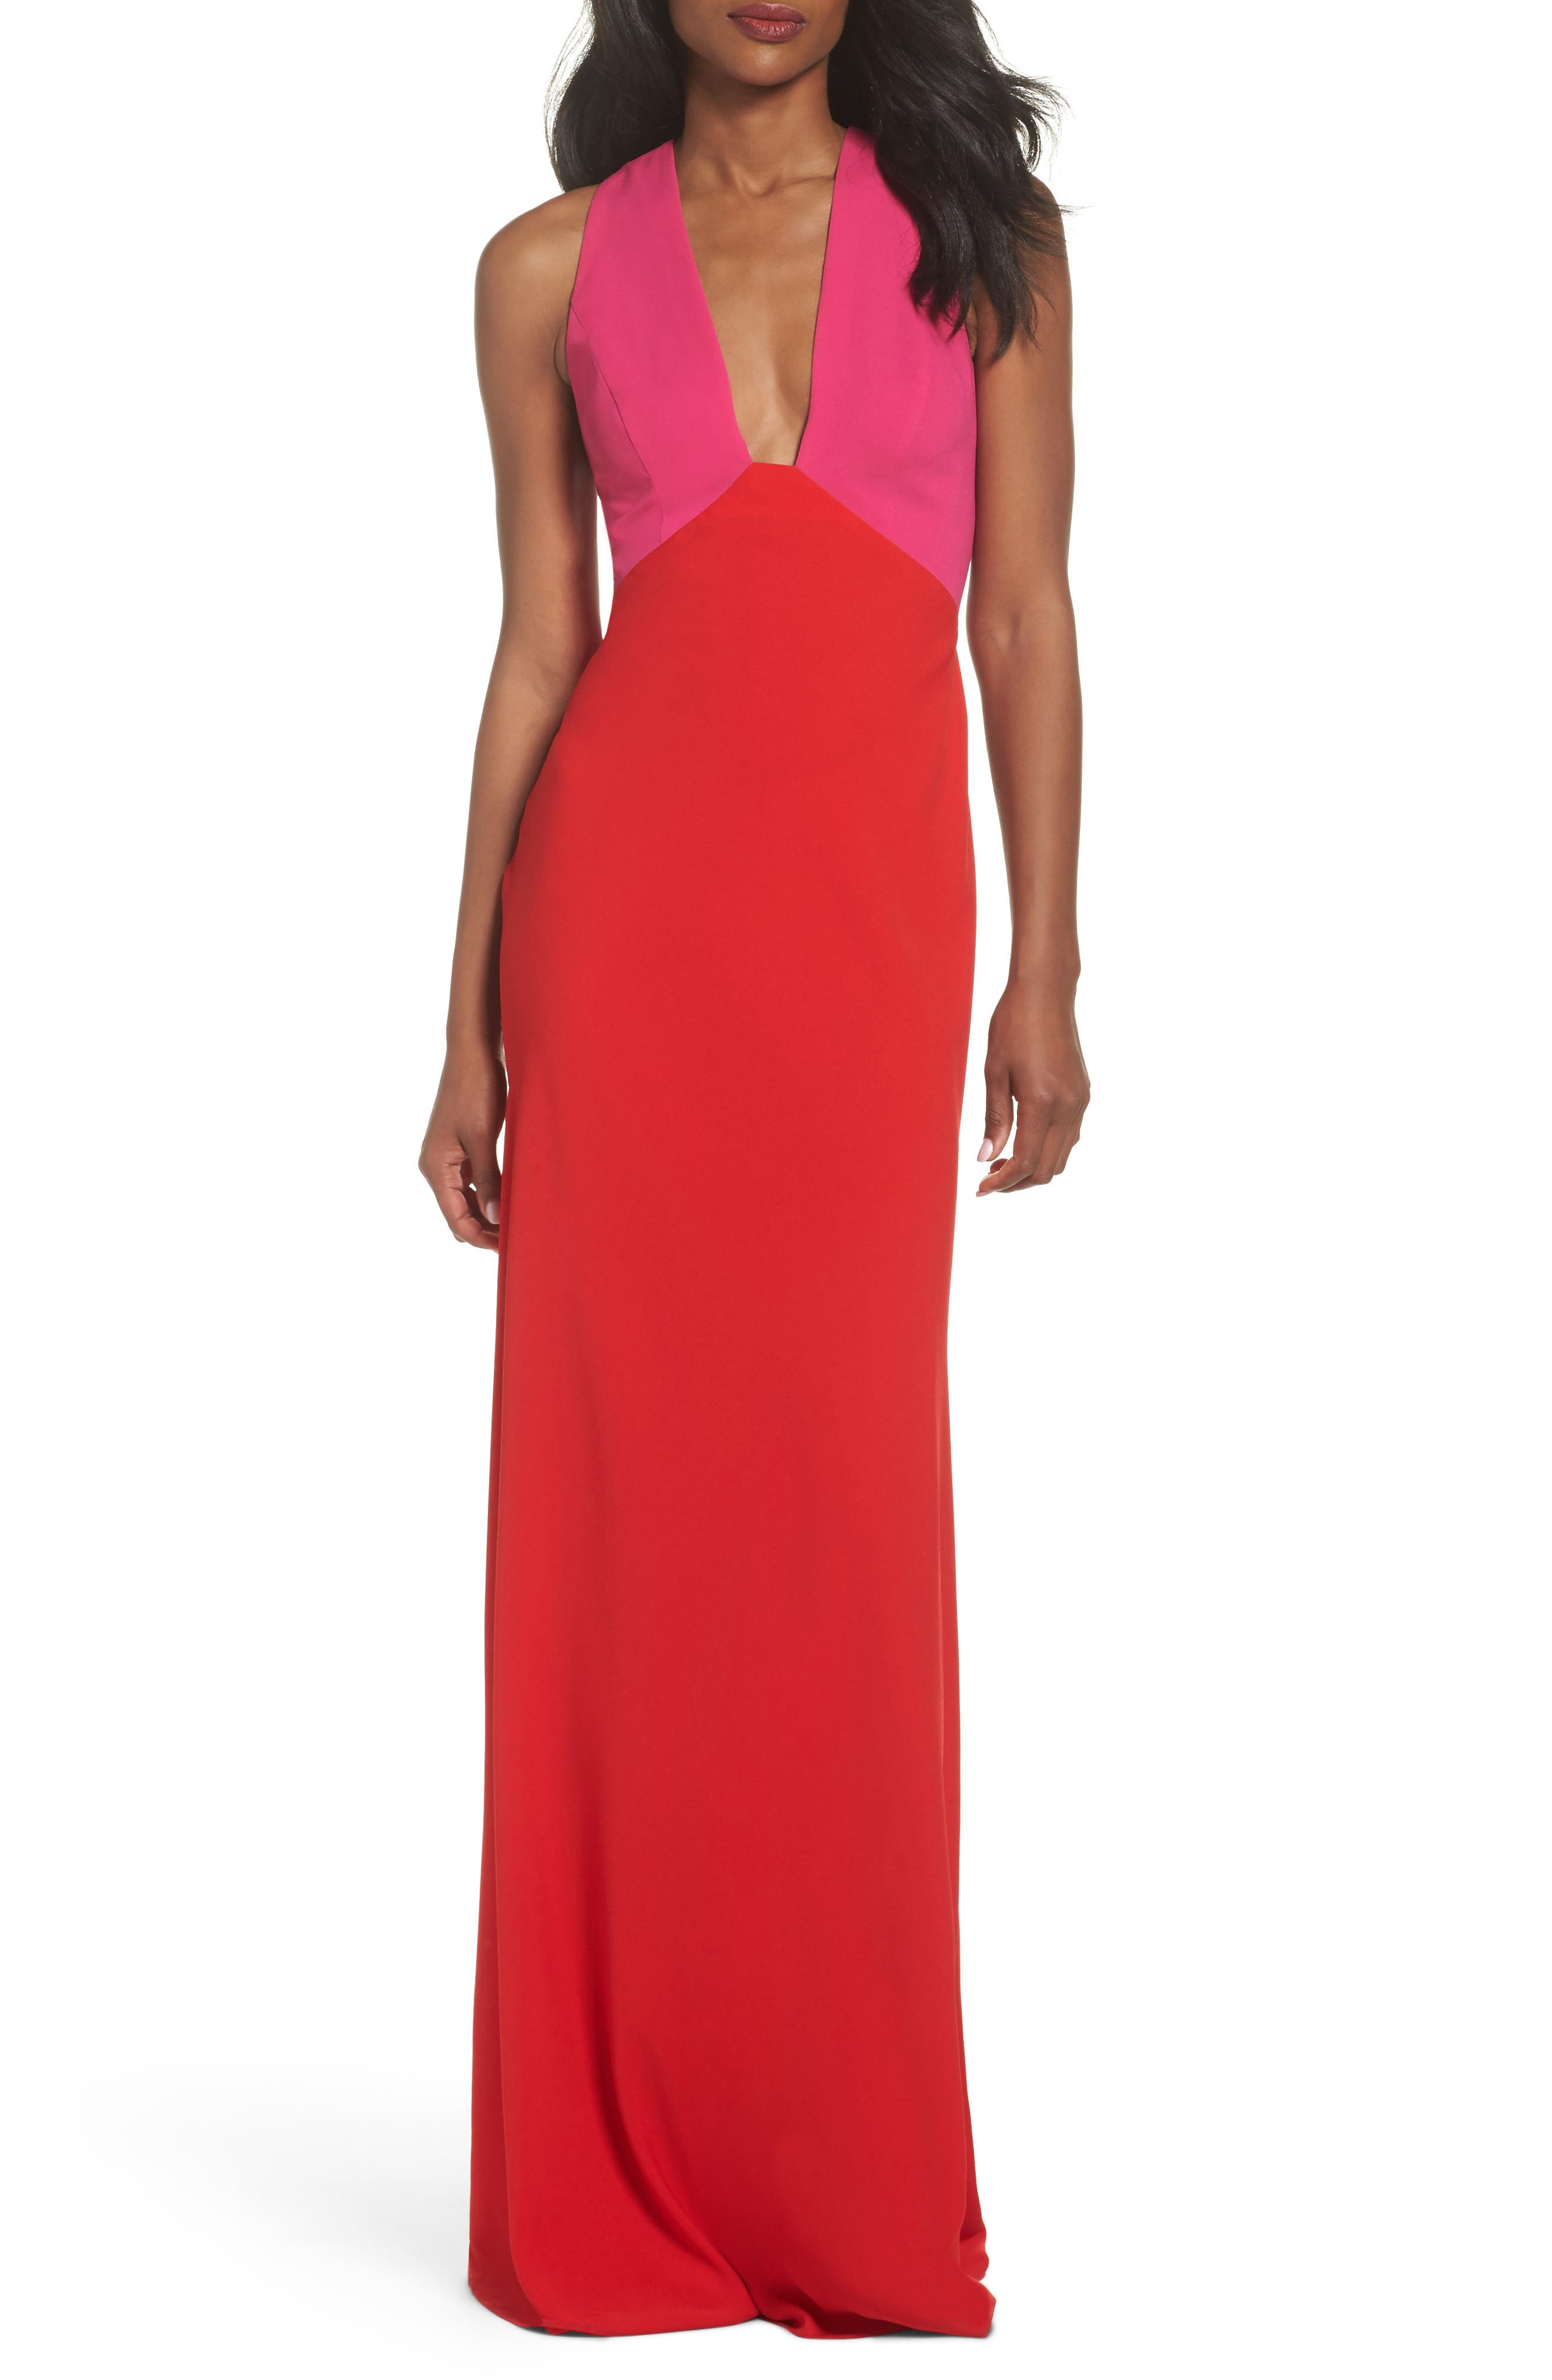 Pink and red colorblock dress